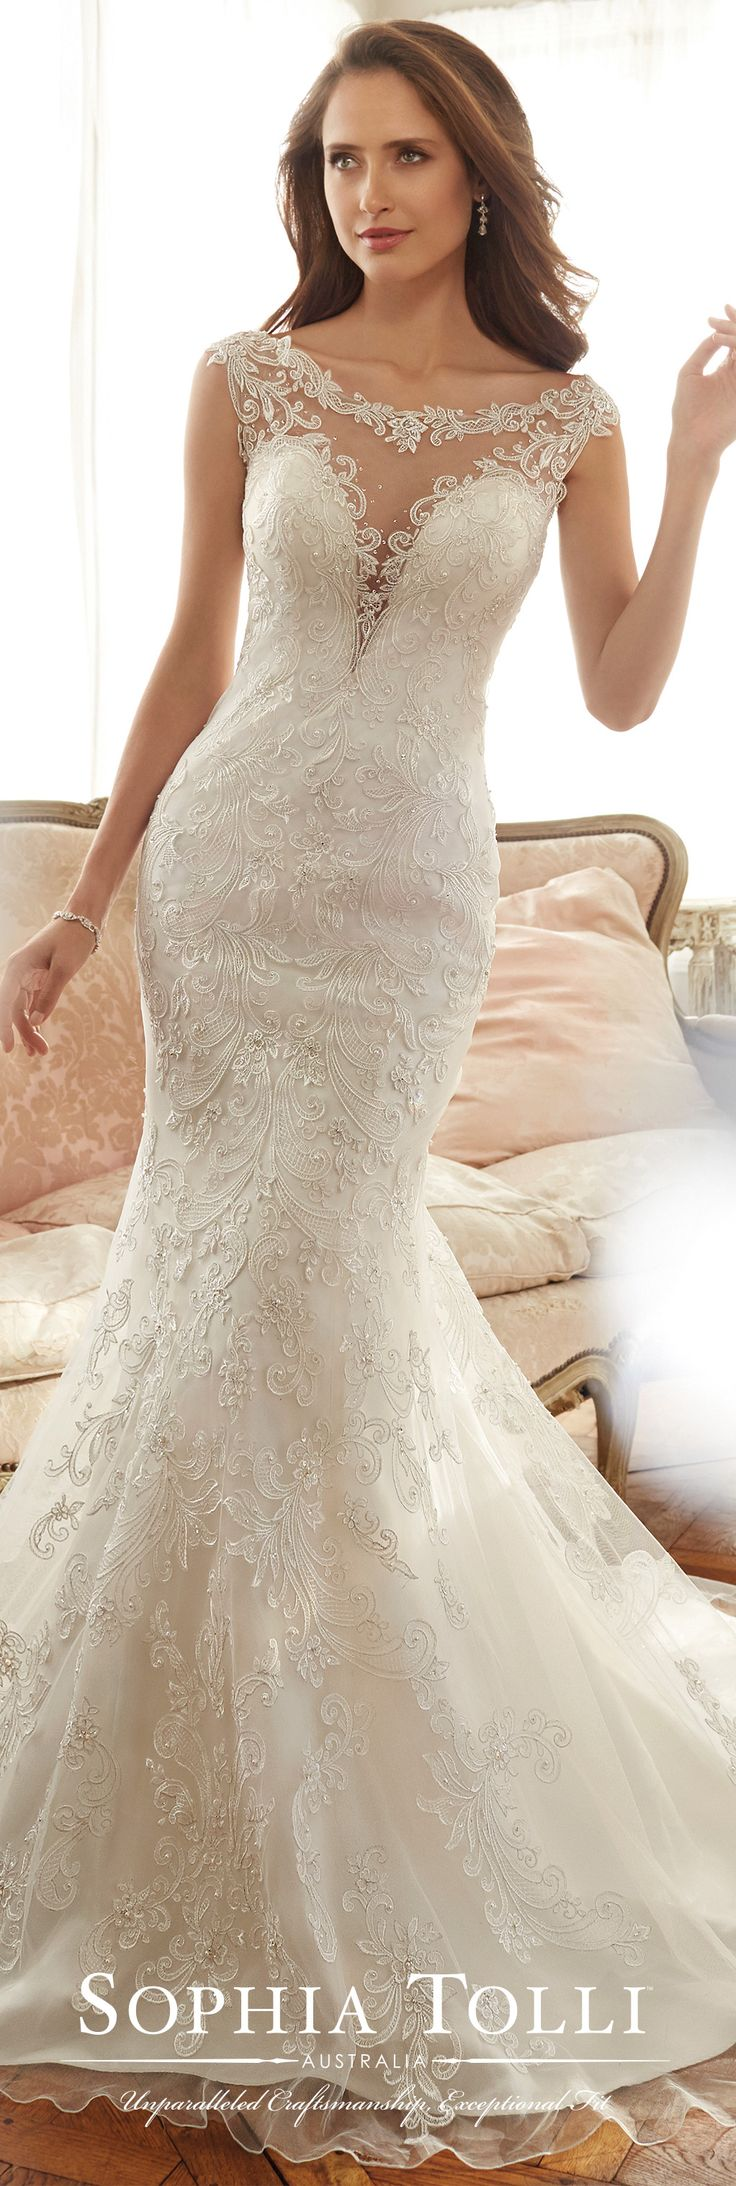 Popular Sophia Tolli Wedding Gowns Y Mimi